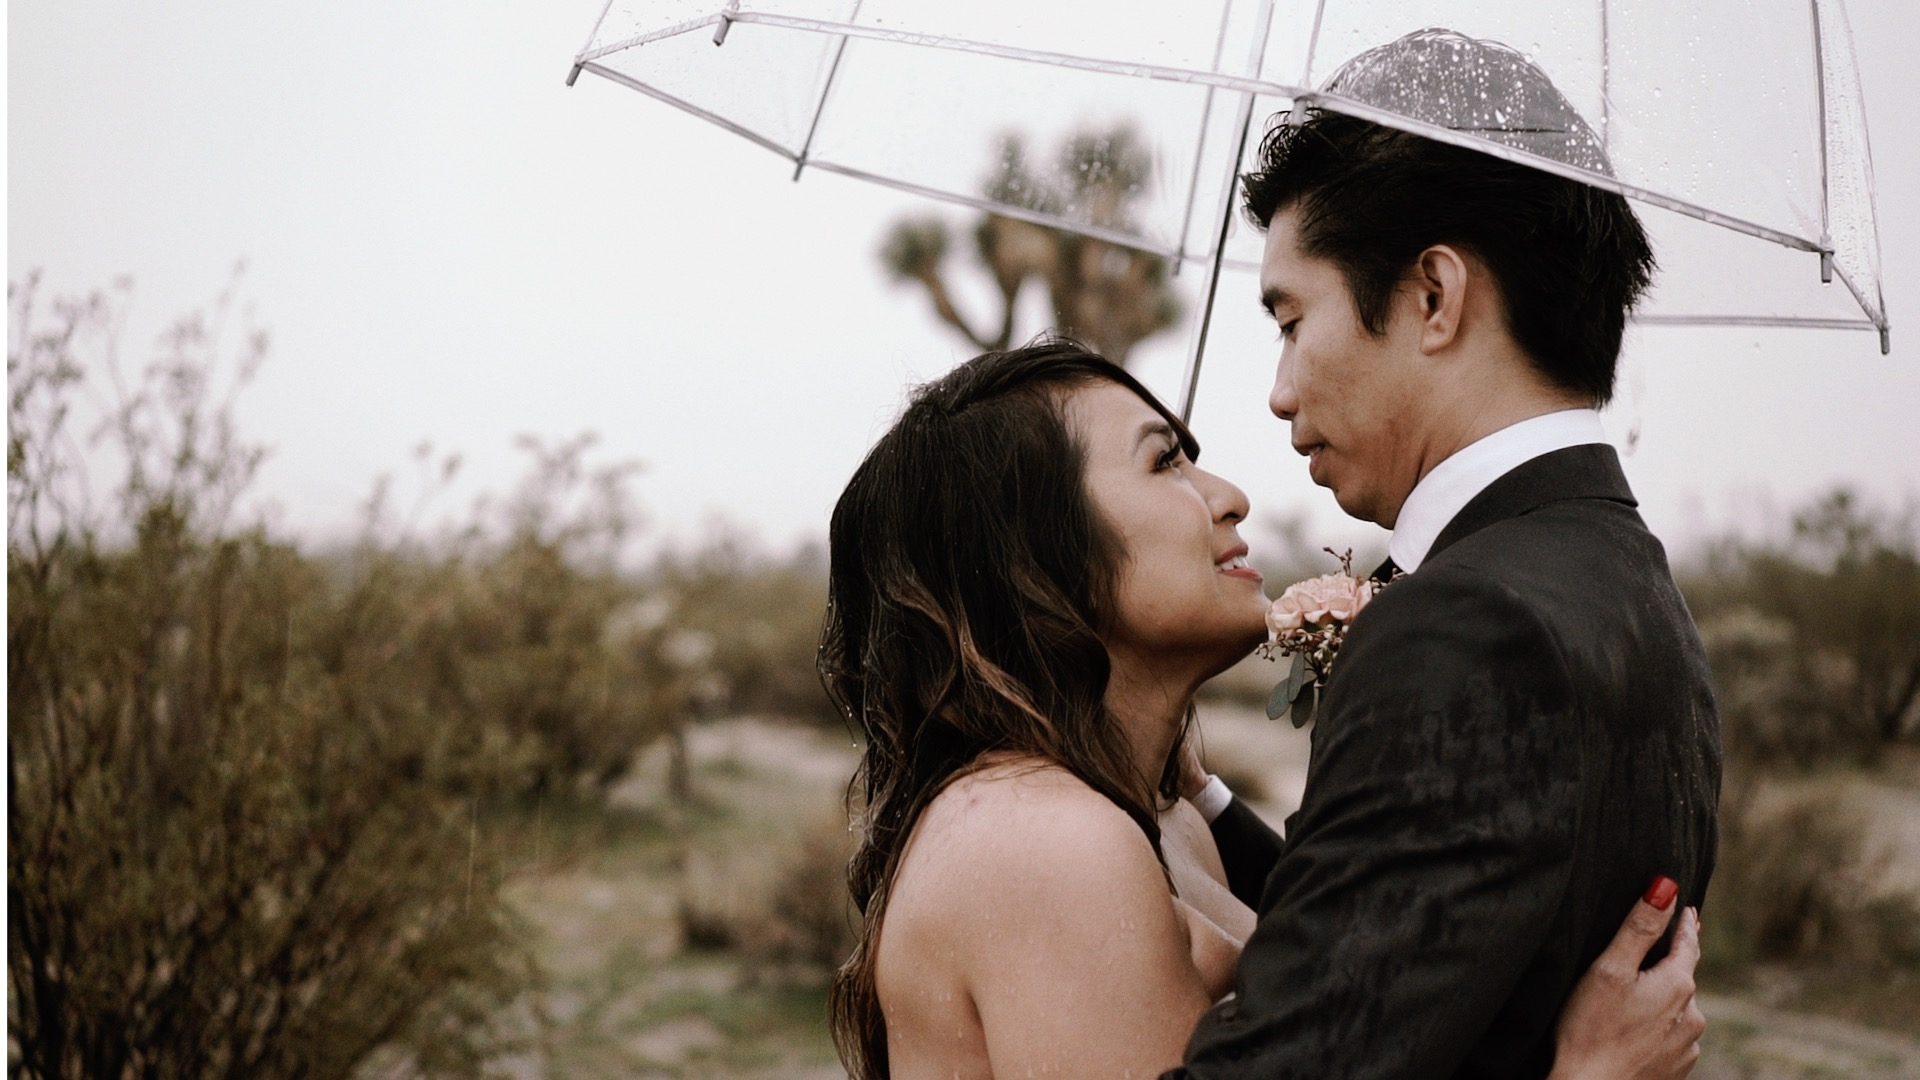 Mike + Mary Grace | Joshua Tree, California | Joshua Tree